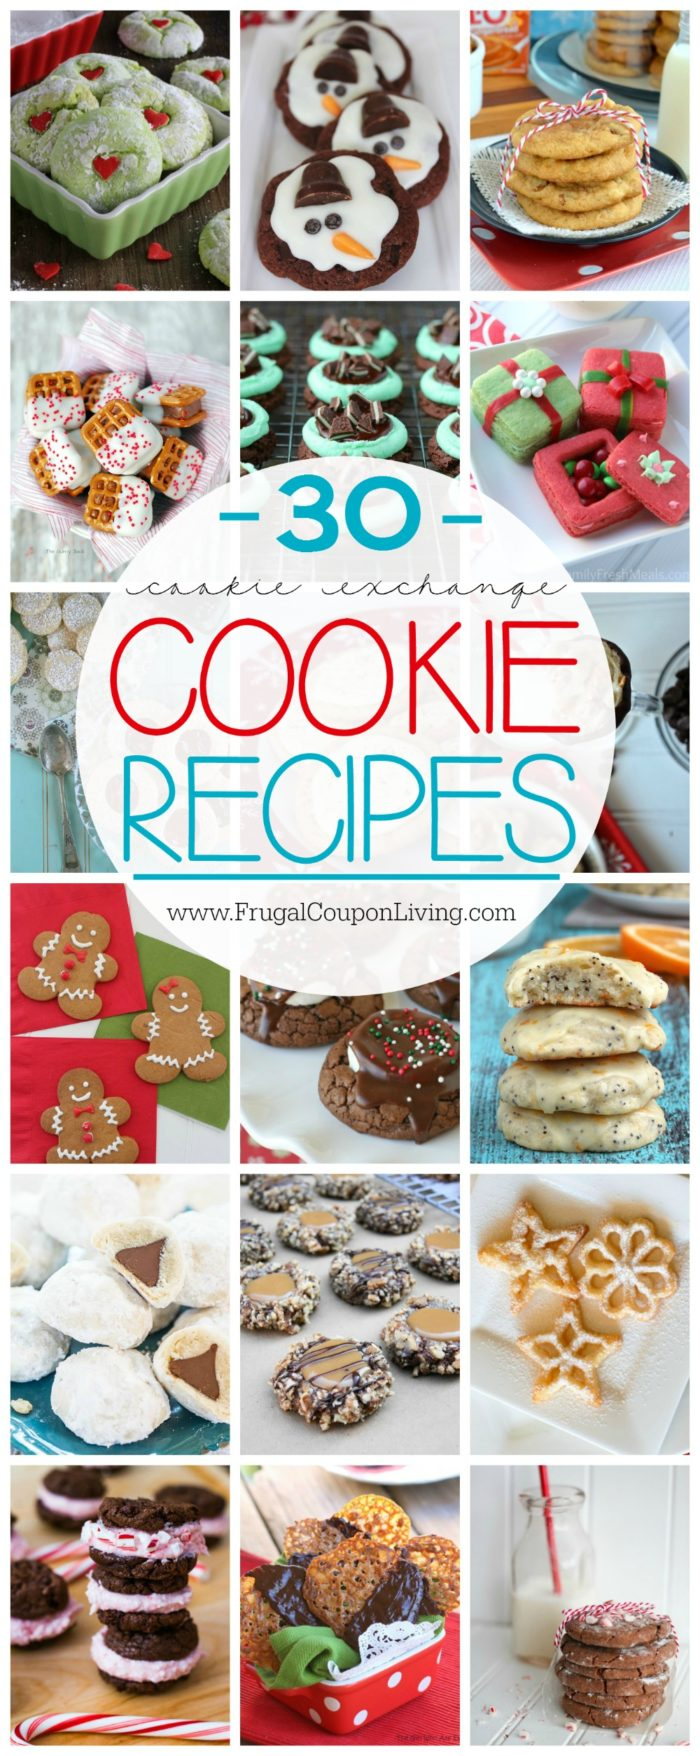 30 Cookie Exchange Cookie Recipes on Frugal Coupon Living